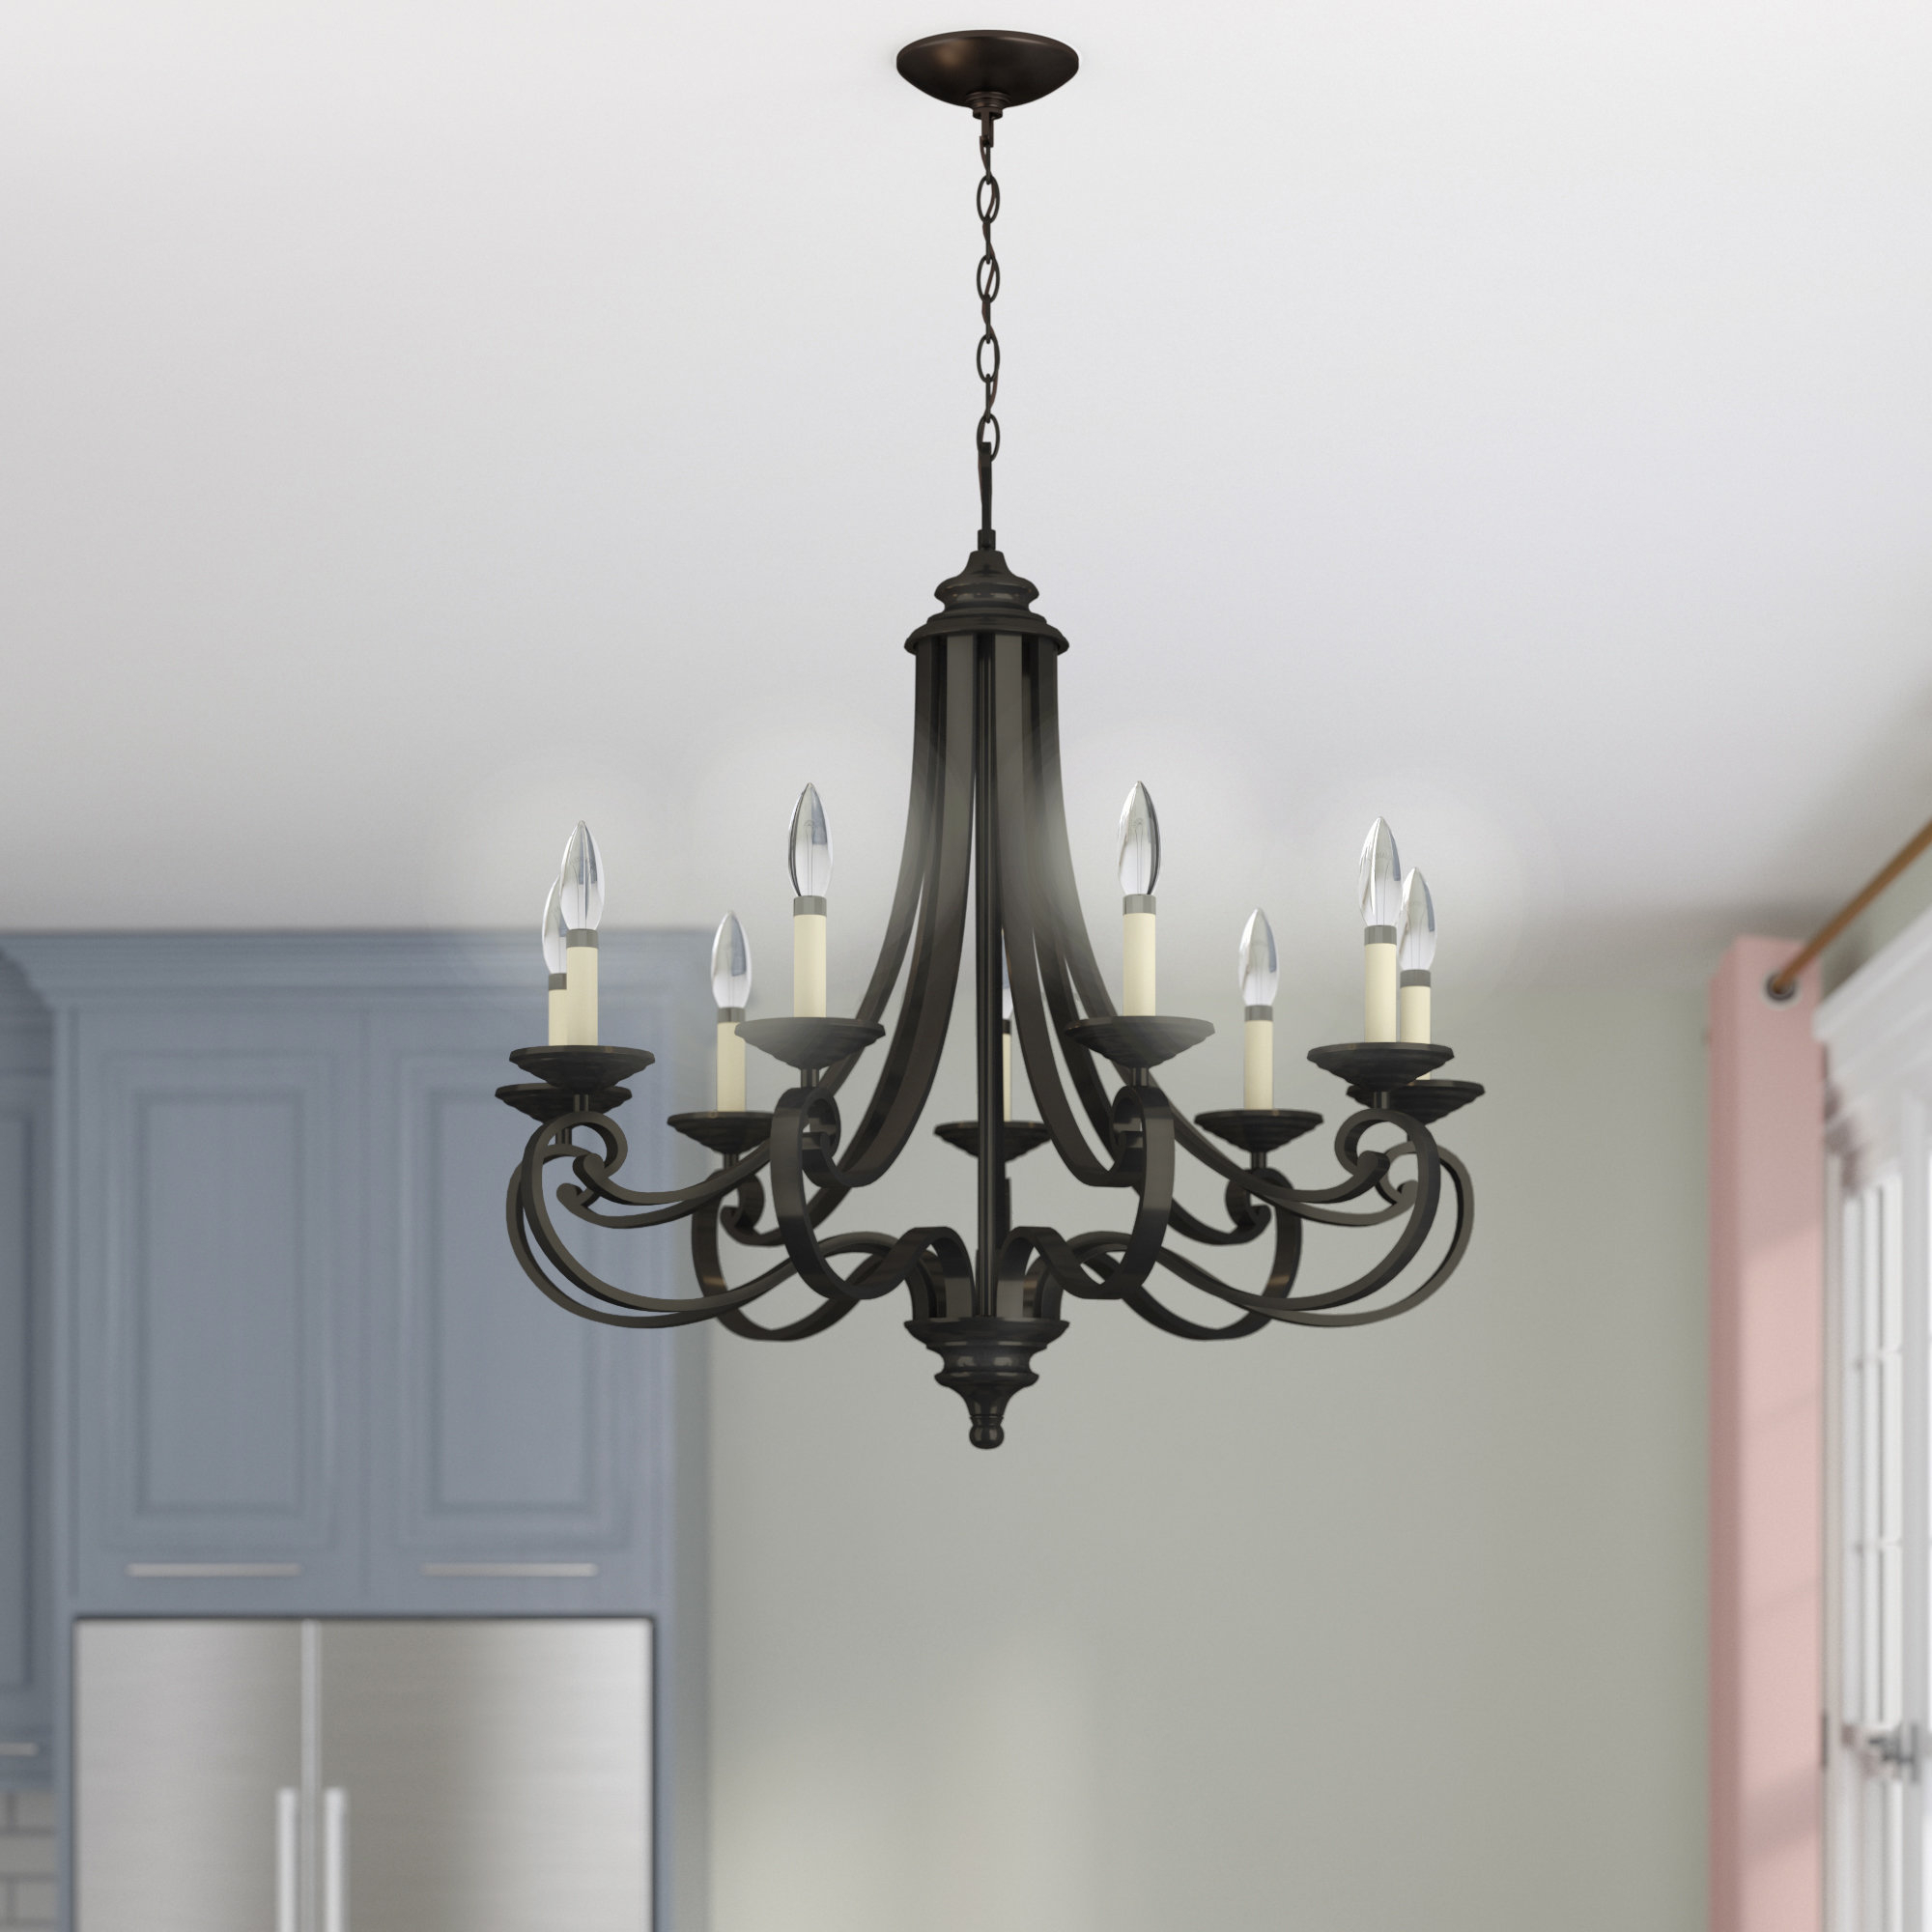 2 Tier Candle Style Chandeliers You'll Love In 2019 | Wayfair Within Kenedy 9 Light Candle Style Chandeliers (Photo 25 of 30)